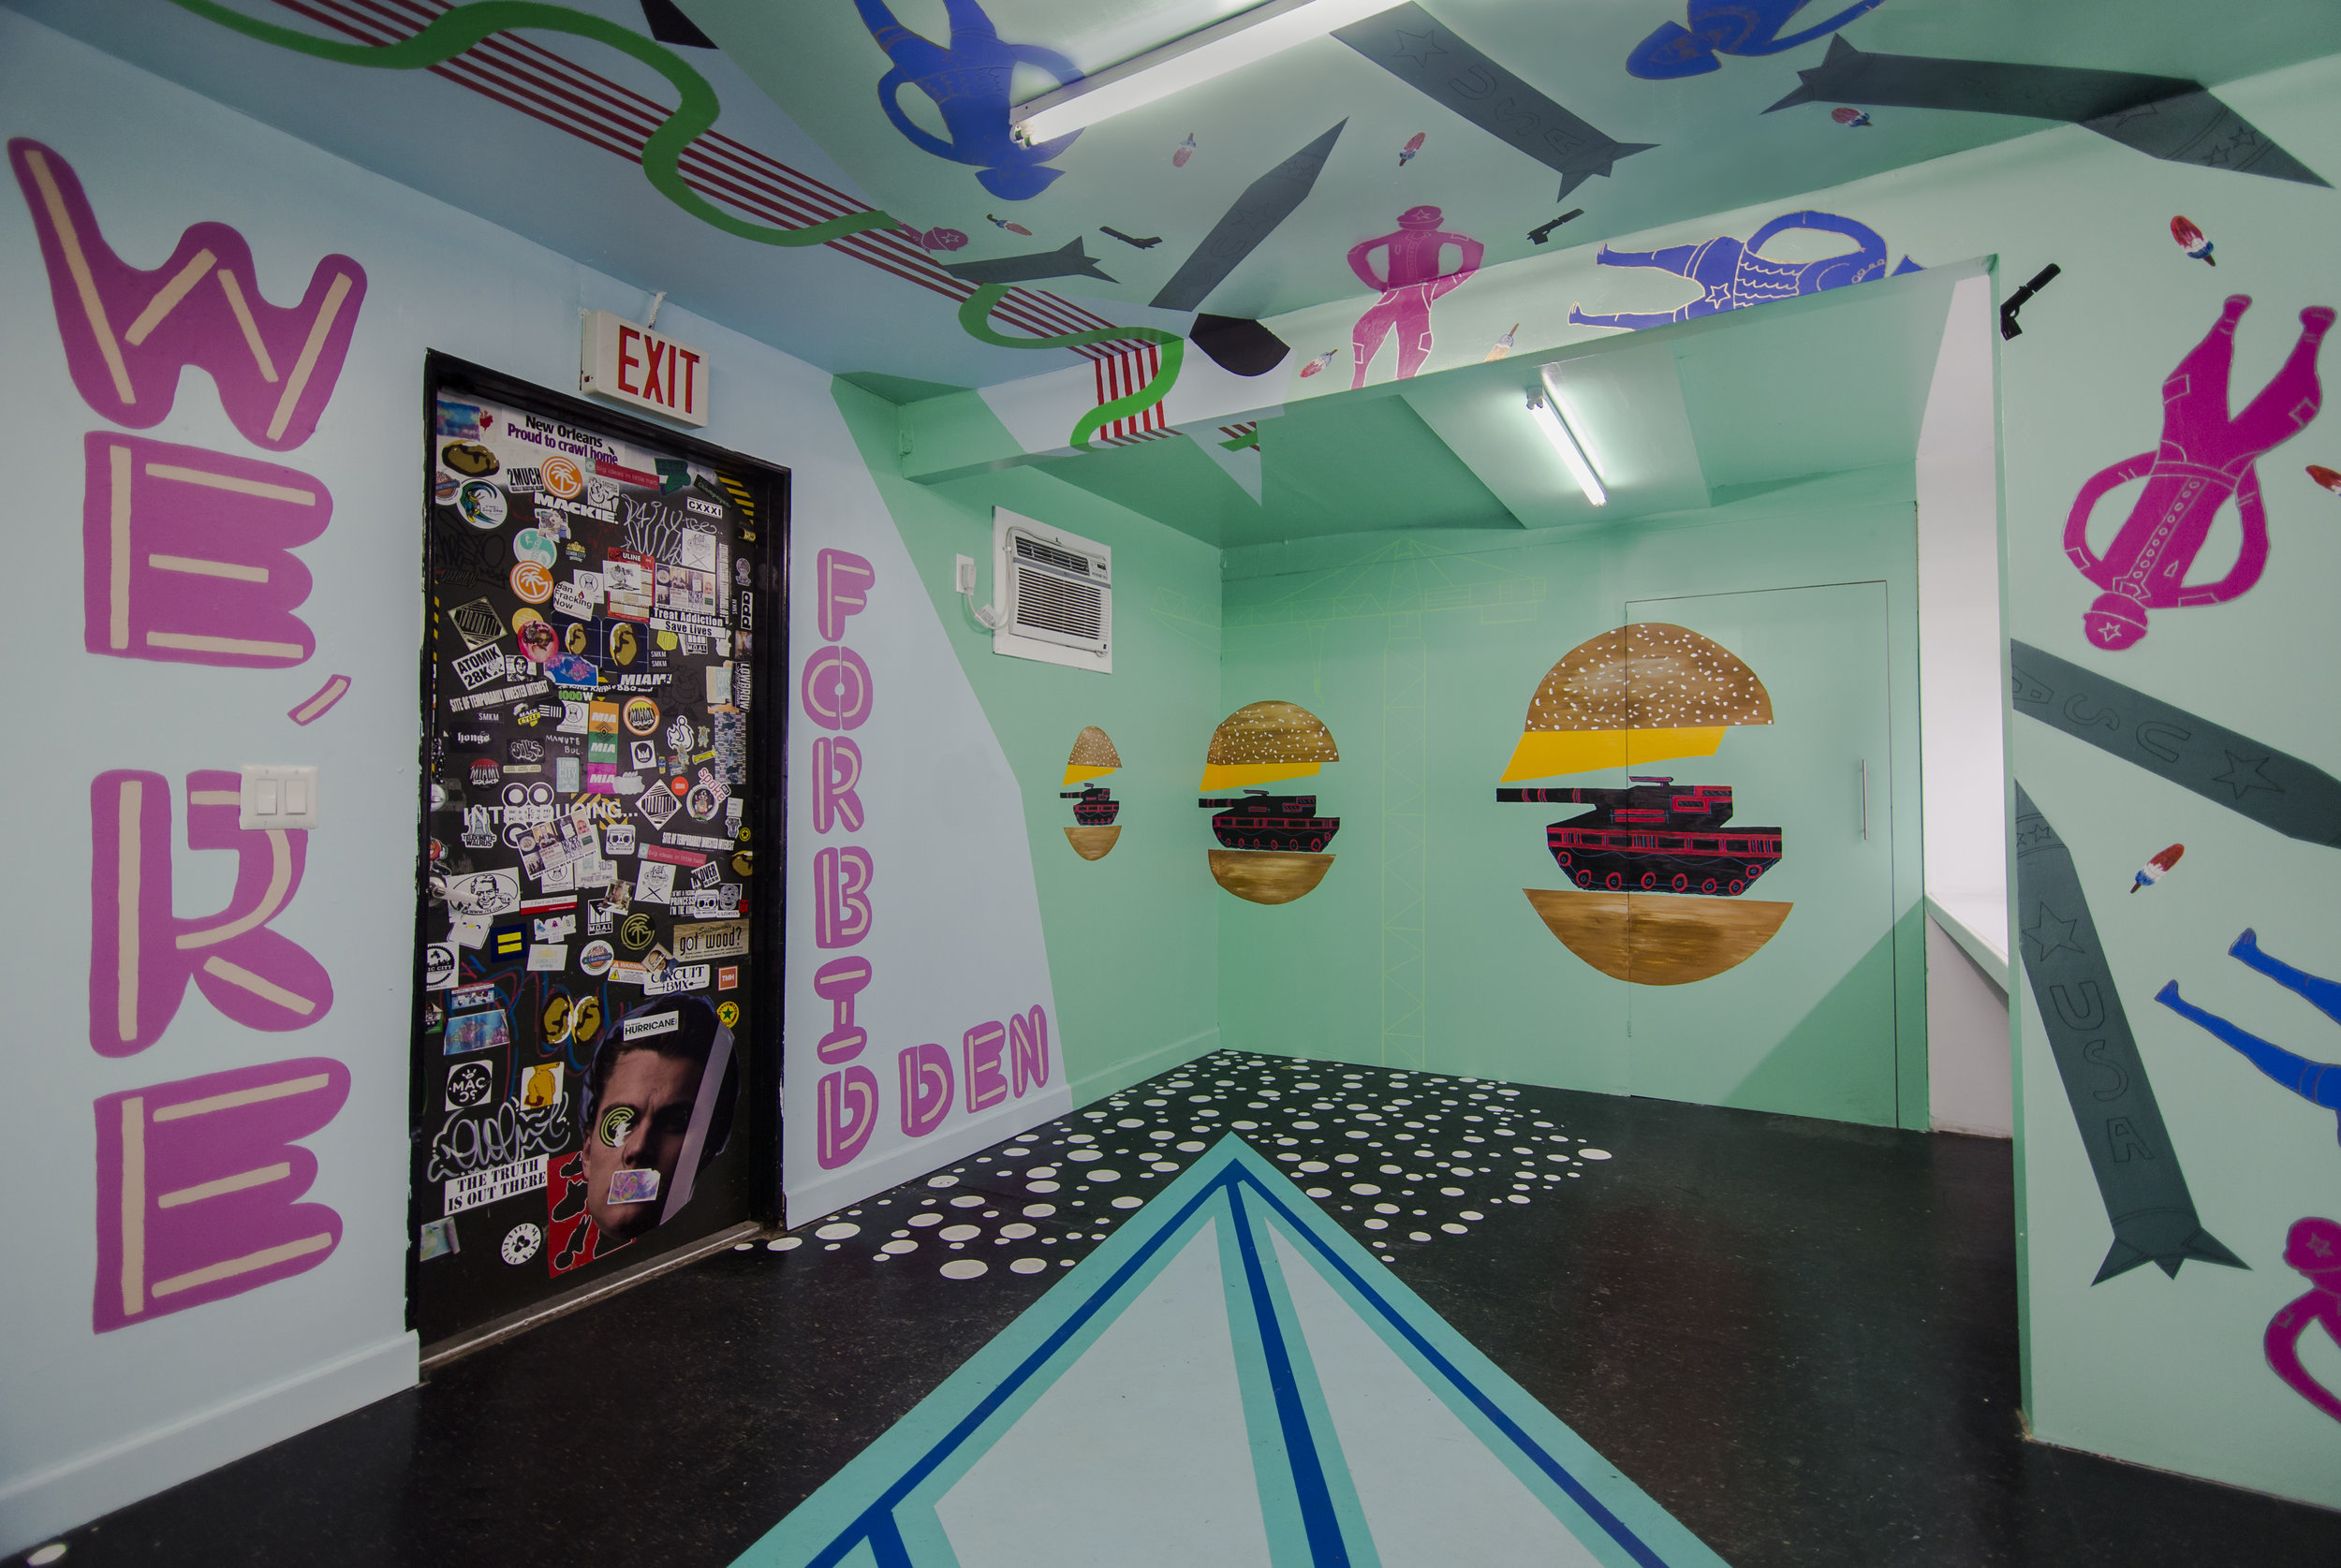 Interior latex, acrylic paint, and markers Flowerbox Projects, Miami, FL June 21, 2016, to August 15, 2016